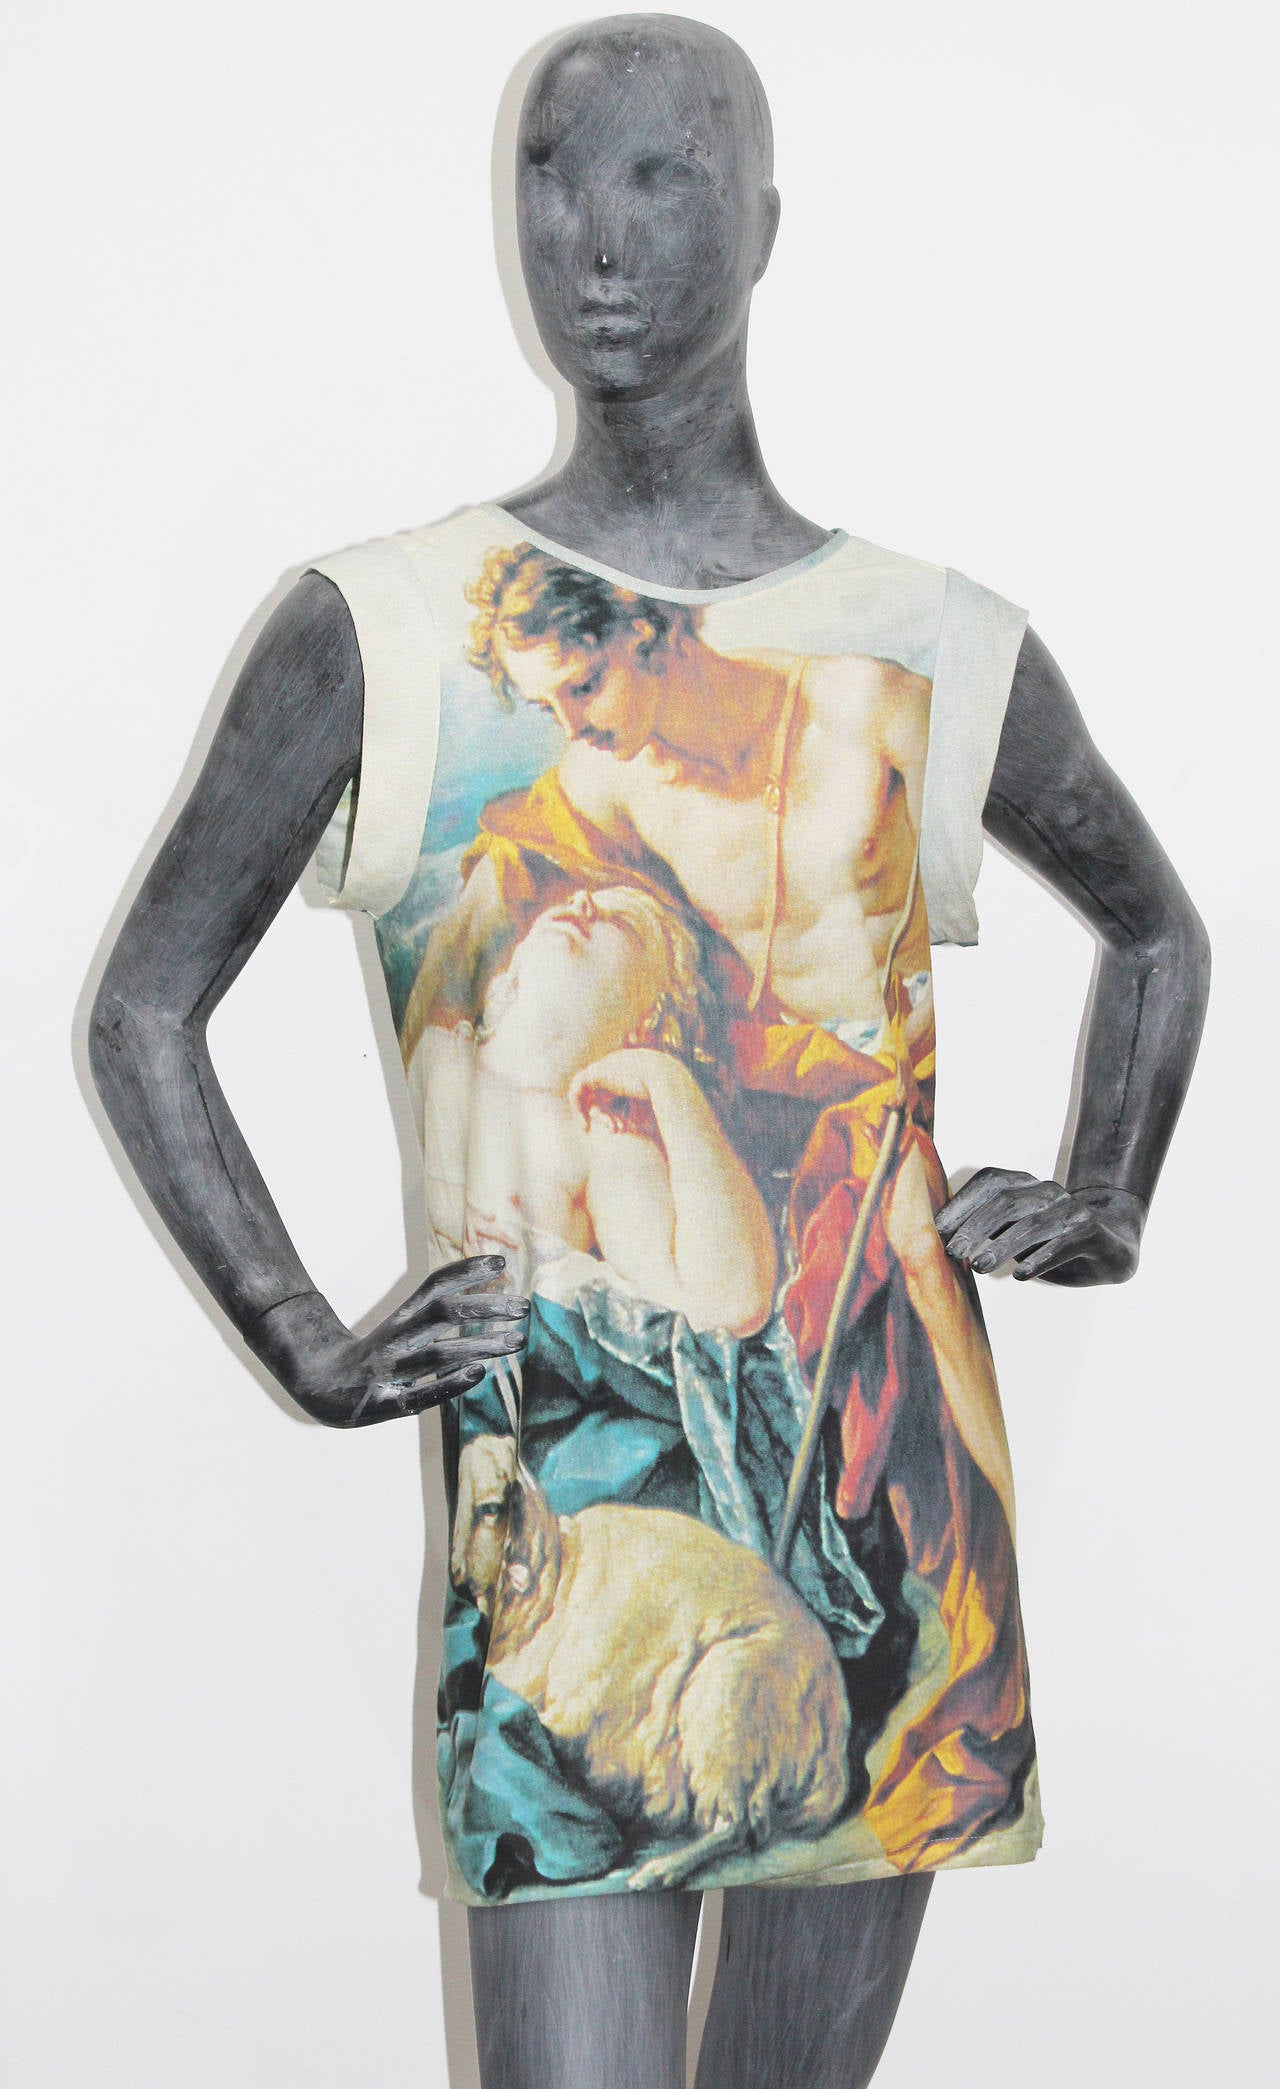 Iconic Vivienne Westwood Boucher Mini Dress From The Portrait Collection c.1990 2